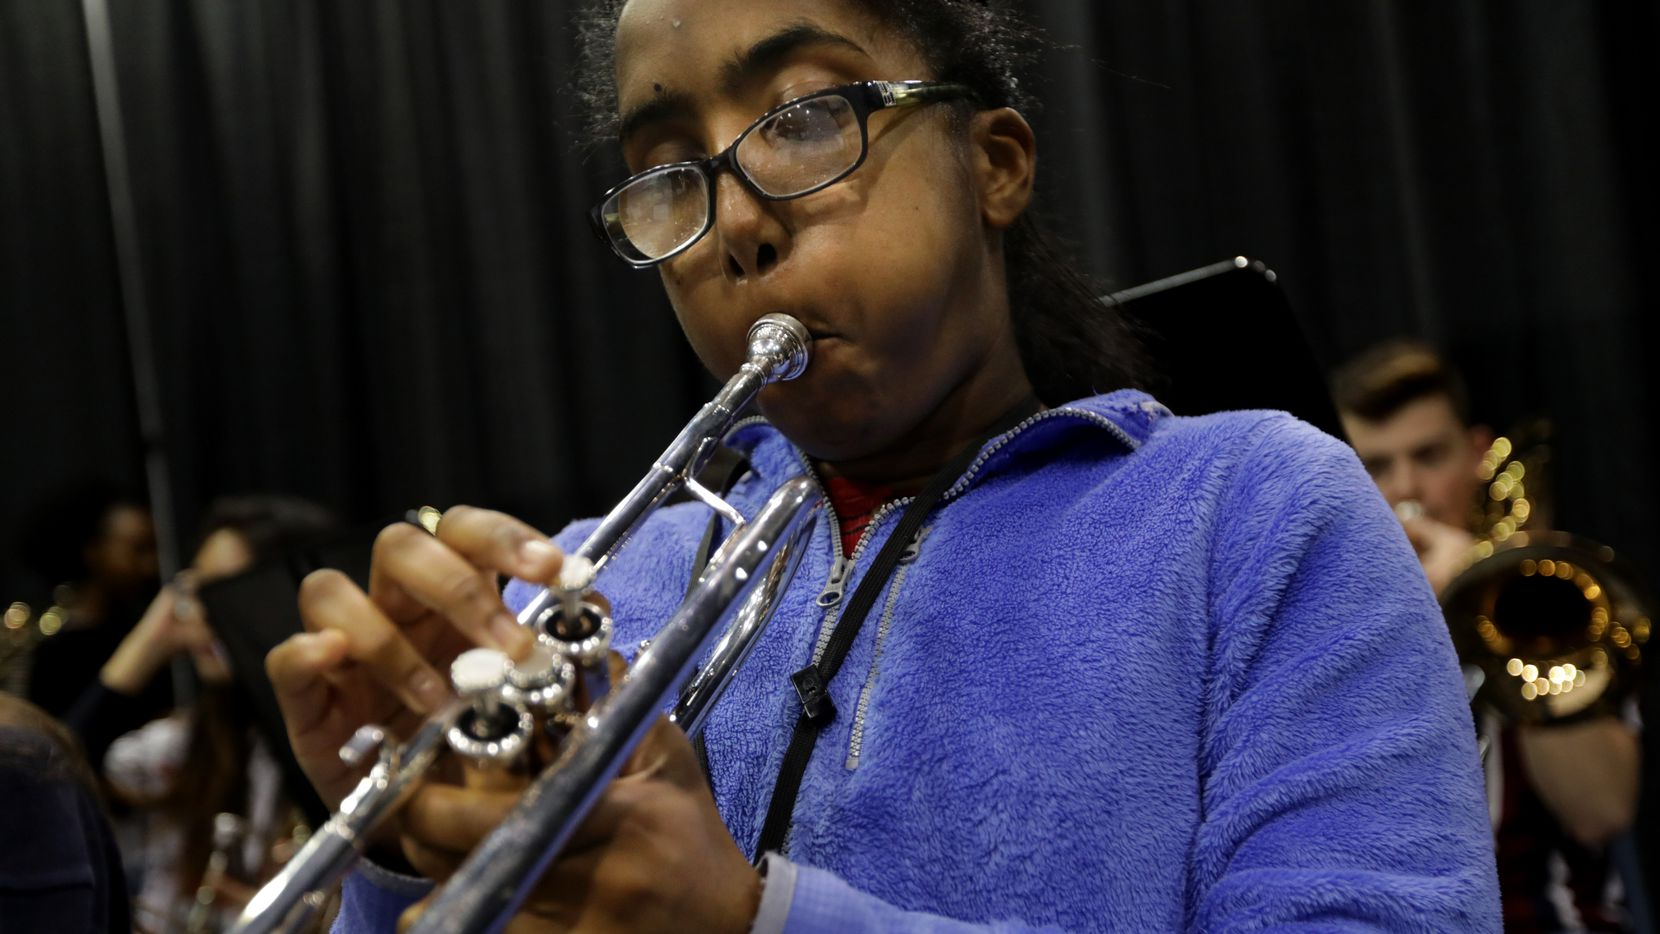 Milka Yohannes practices with the Allen High School band in December. Music will be among the areas included in a series of student-produced videos that will focus on supporting mental and physical health during the coronavirus pandemic.